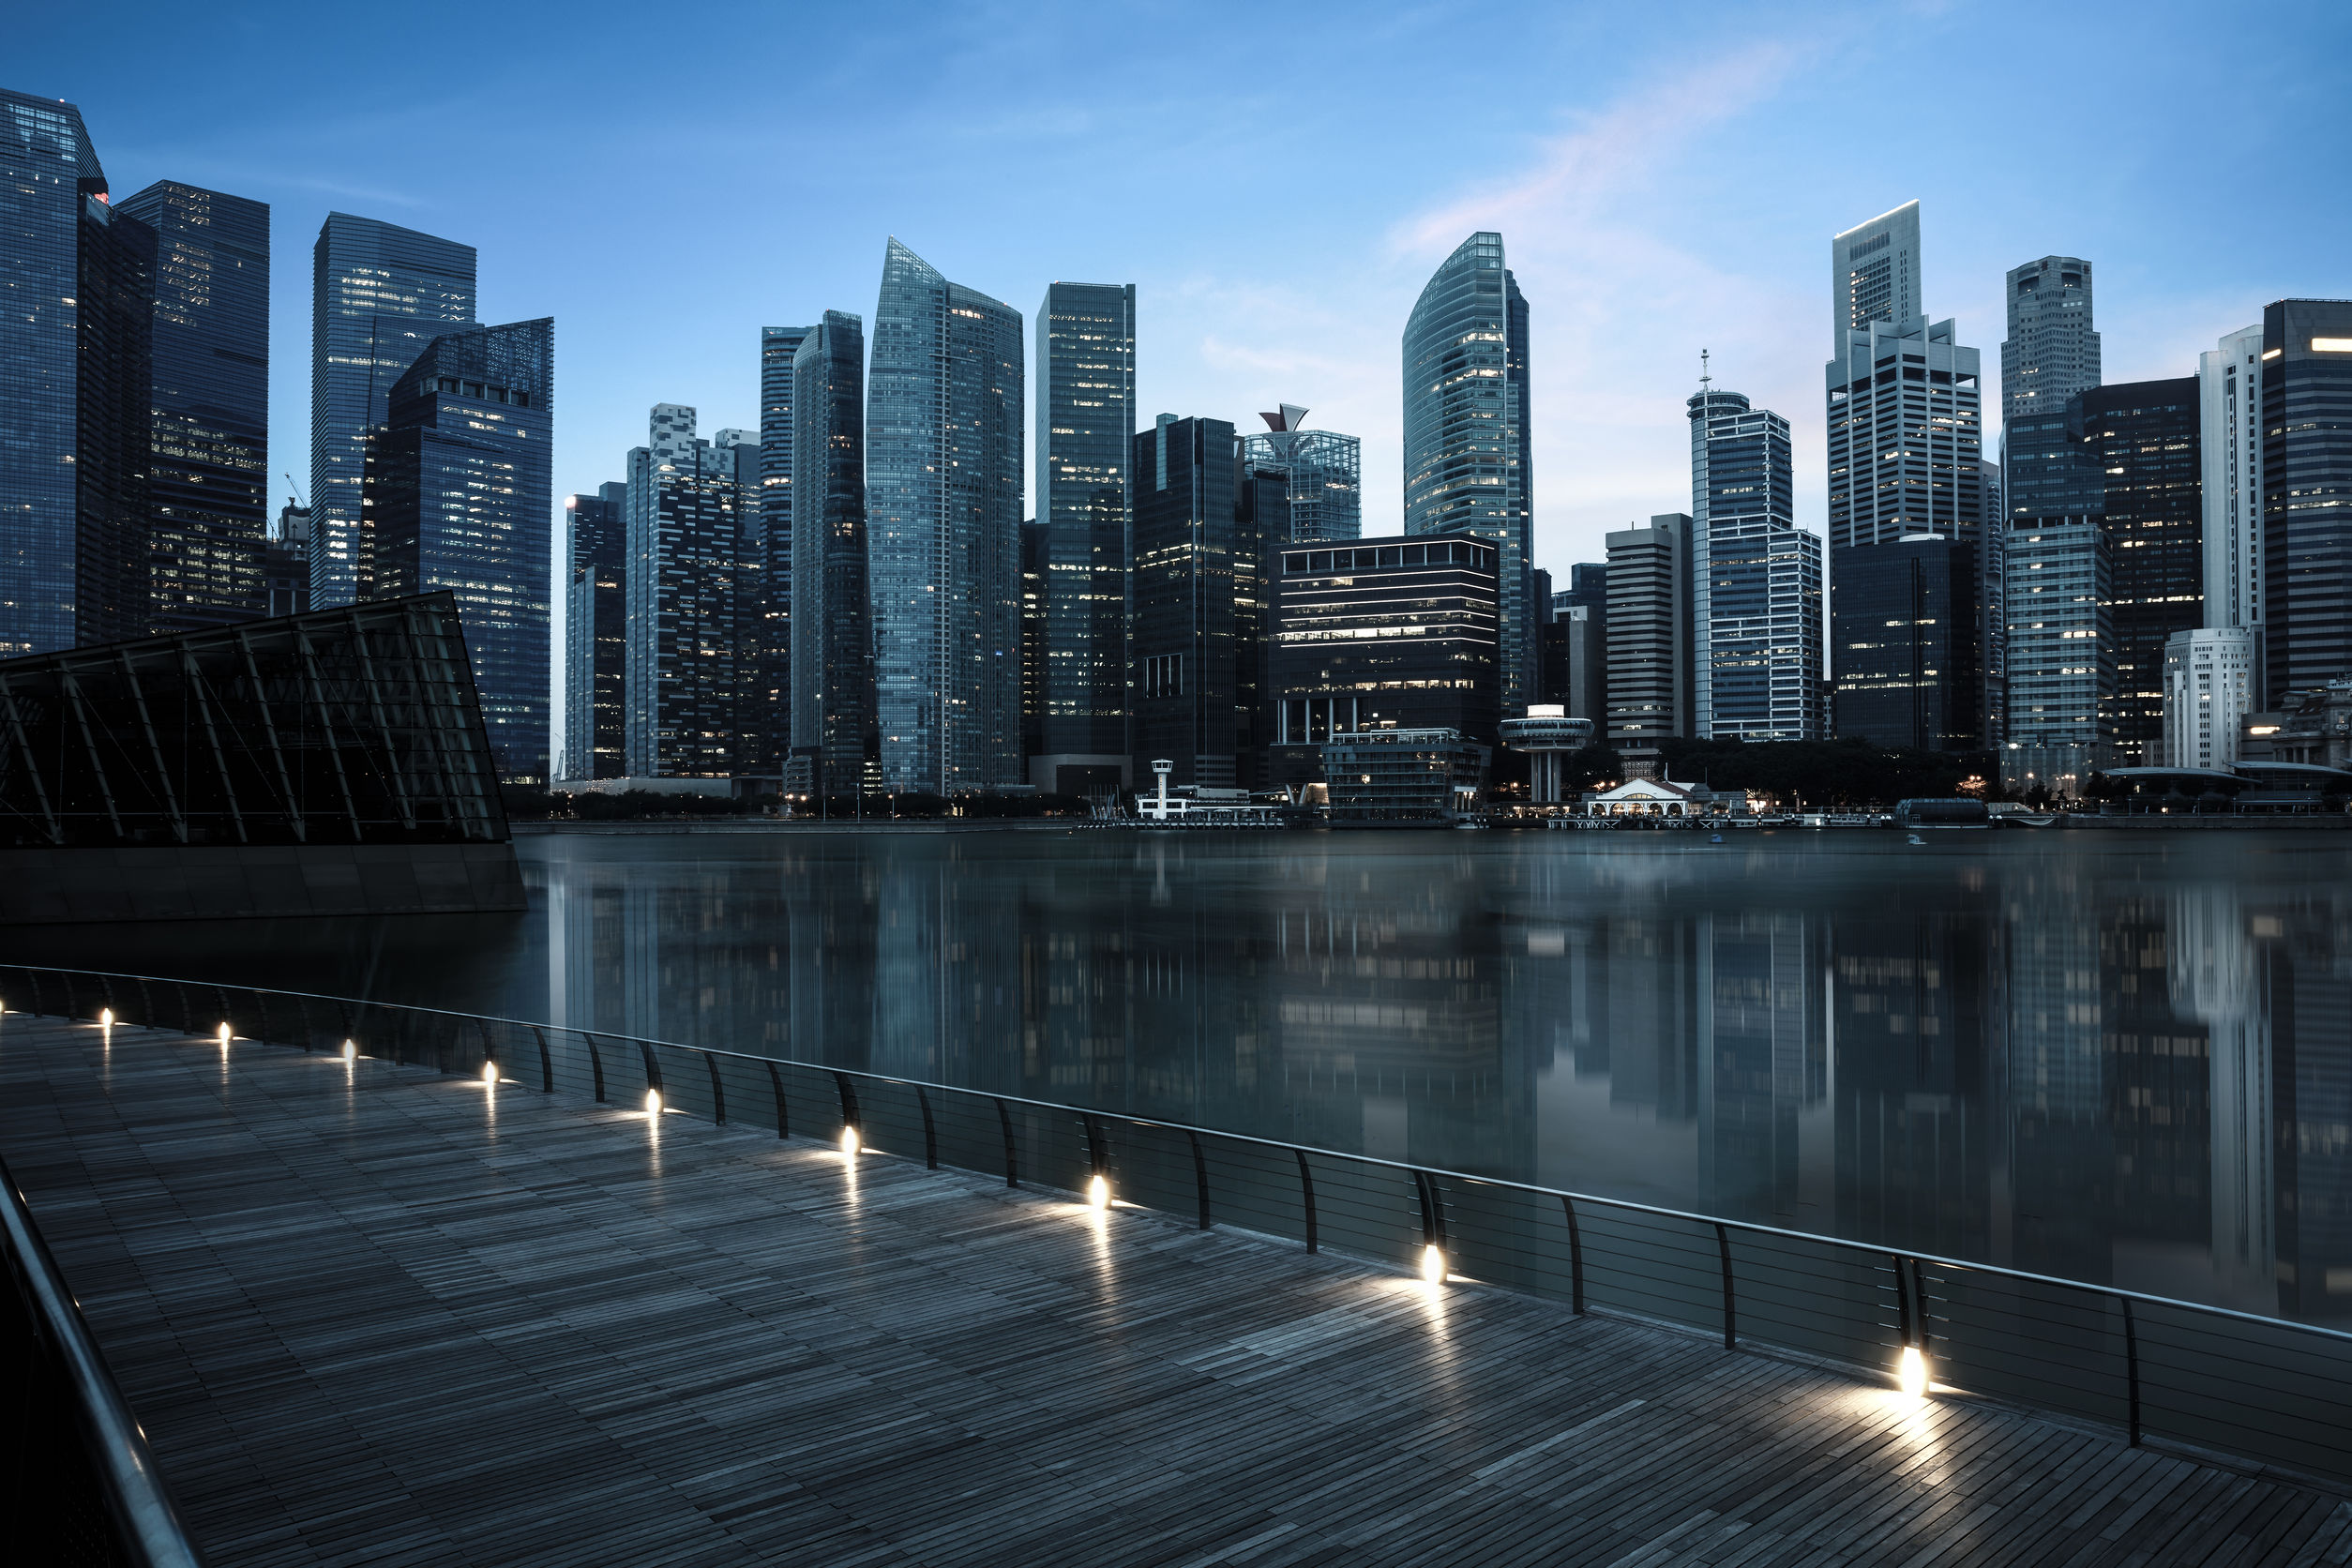 Brief: Singapore sets up new S$1b fund to commercialize promising tech